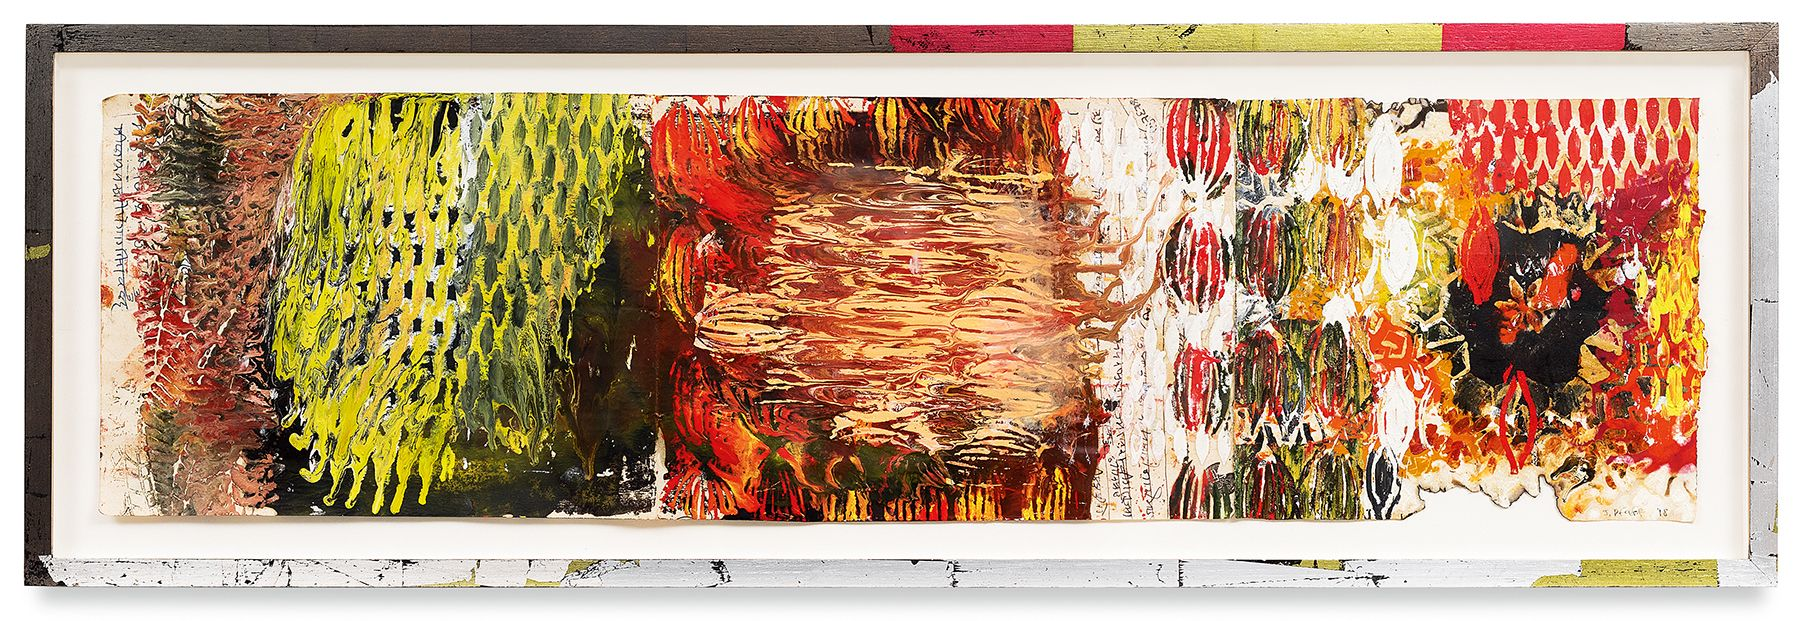 Year of the Rat 11, 2018, Vintage Indian paper, oil stick, encaustic, vintage Indian paper, in artist's frame, 13 x 40.5 inches, 33 x 102.9 cm, MMG#30608